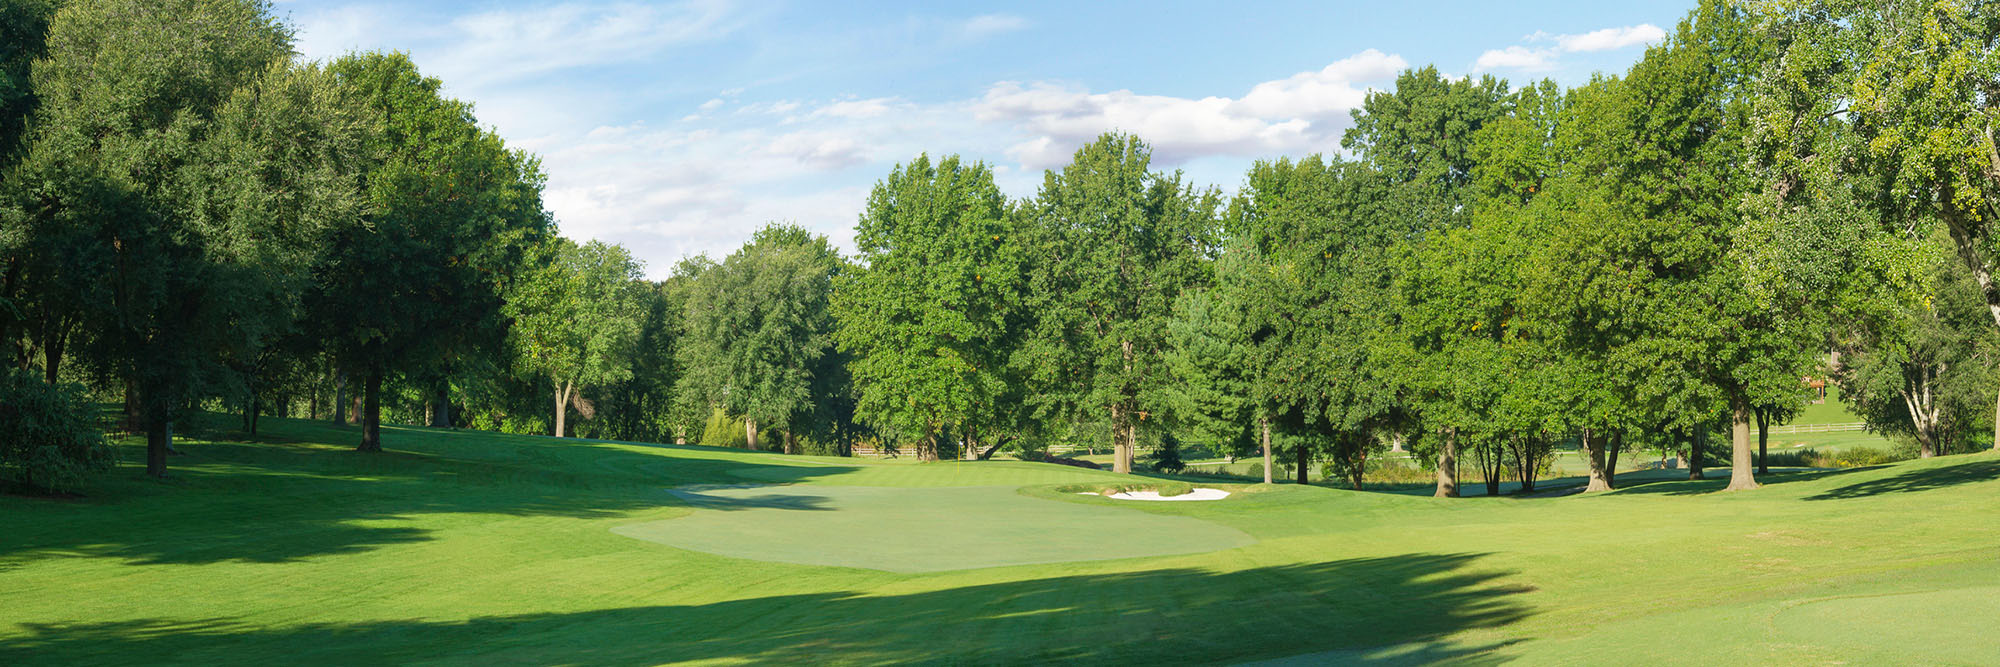 Golf Course Image - Twin Oaks Country Club No. 11